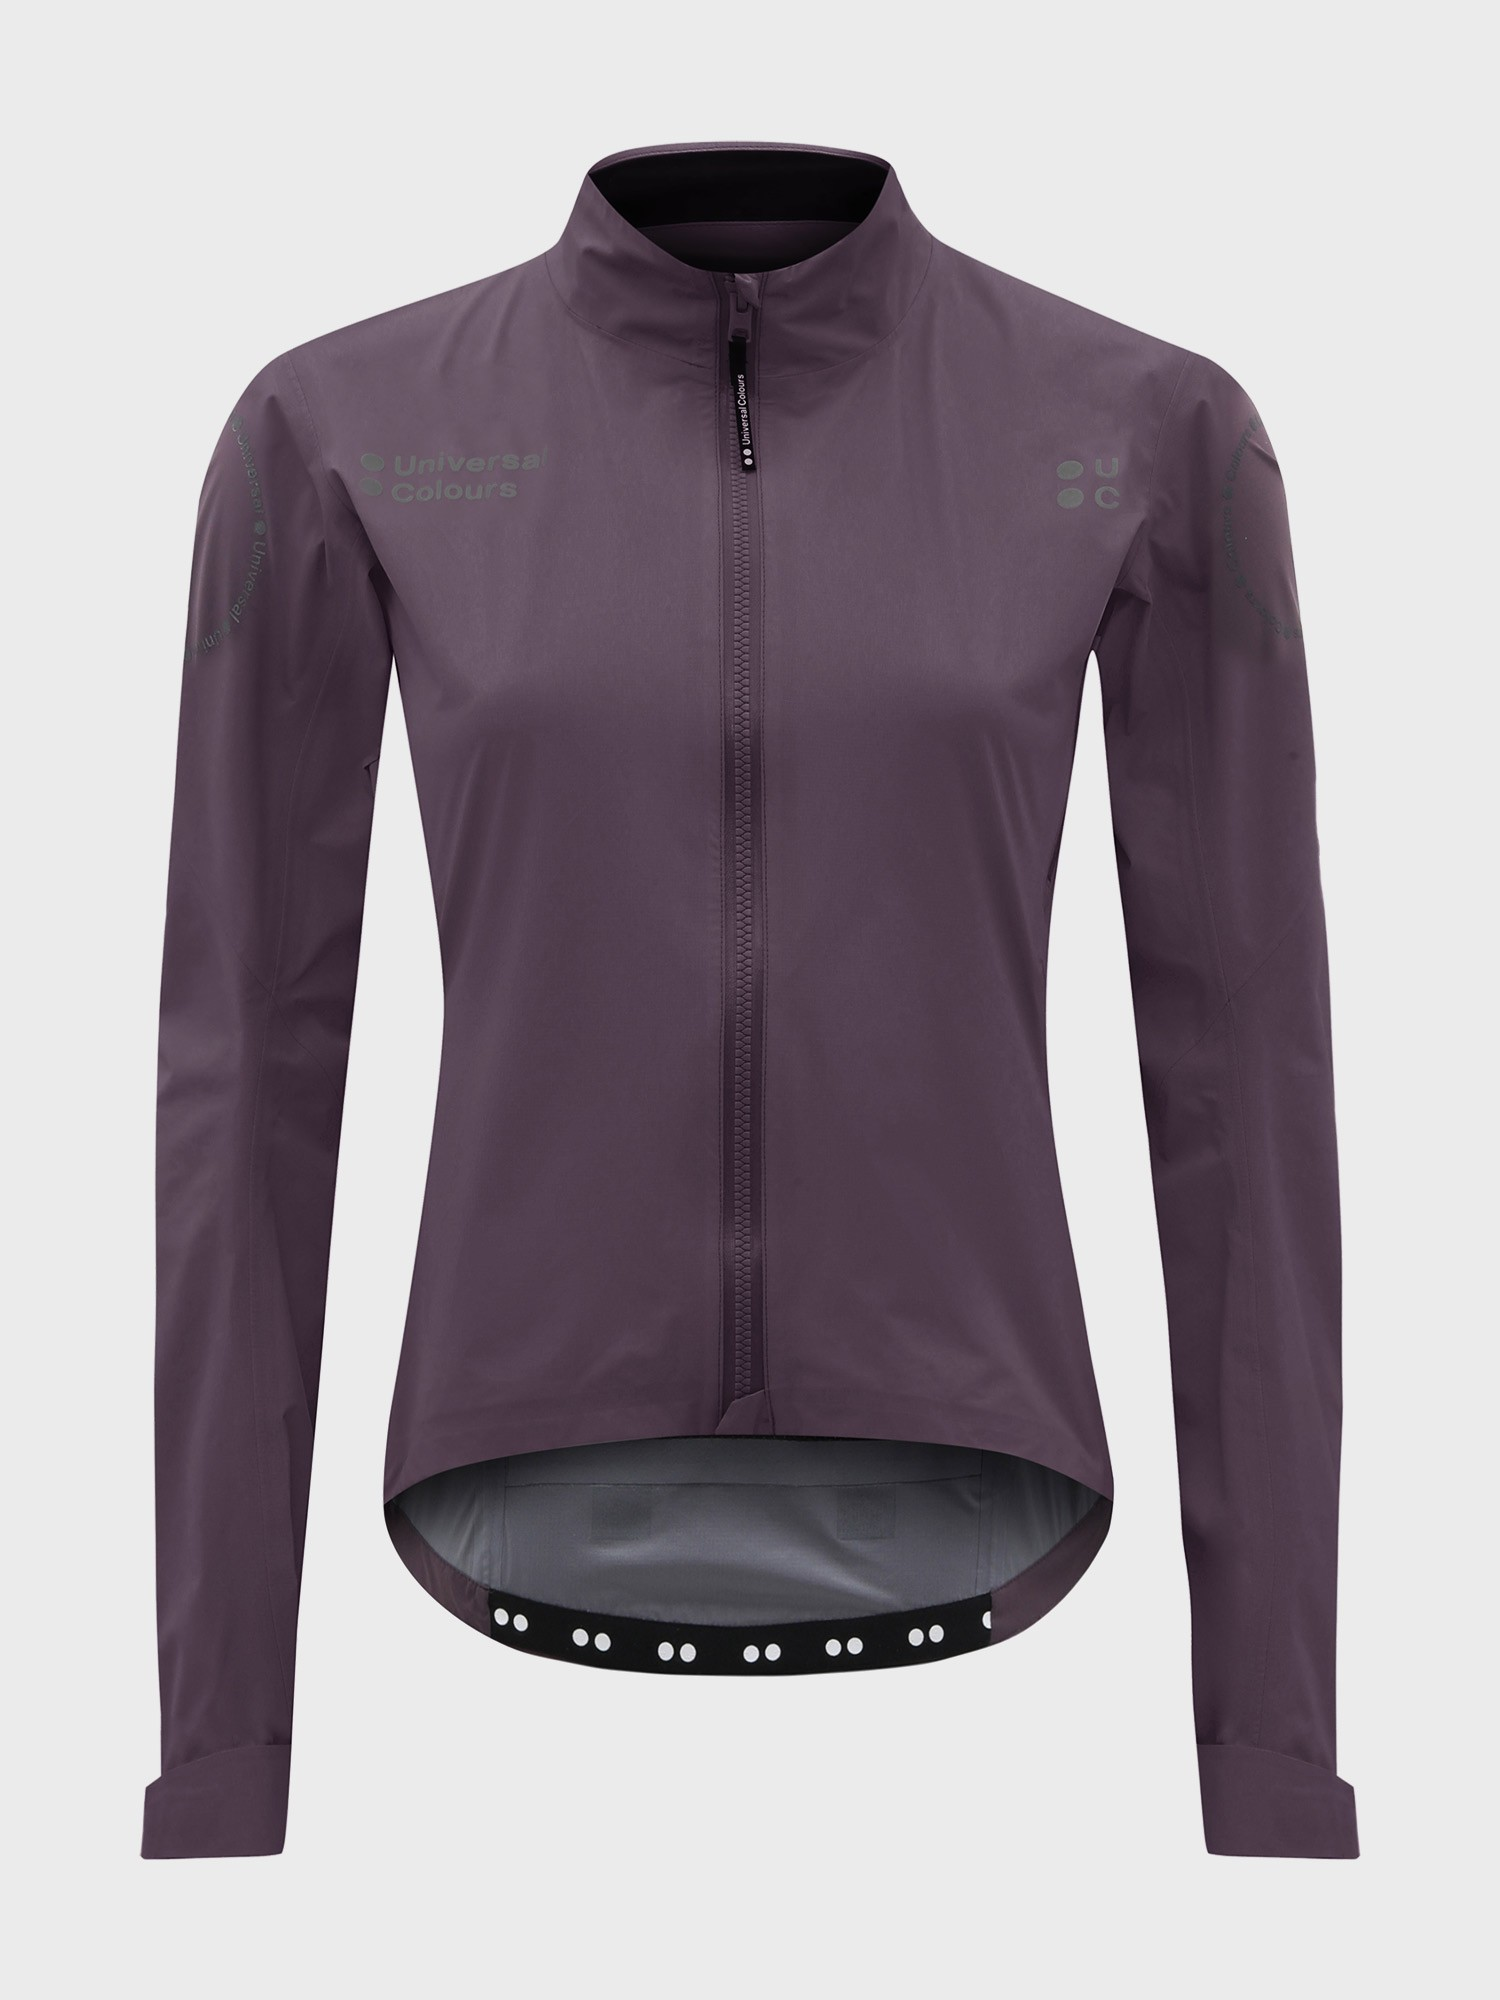 Chroma Women's Rain Jacket